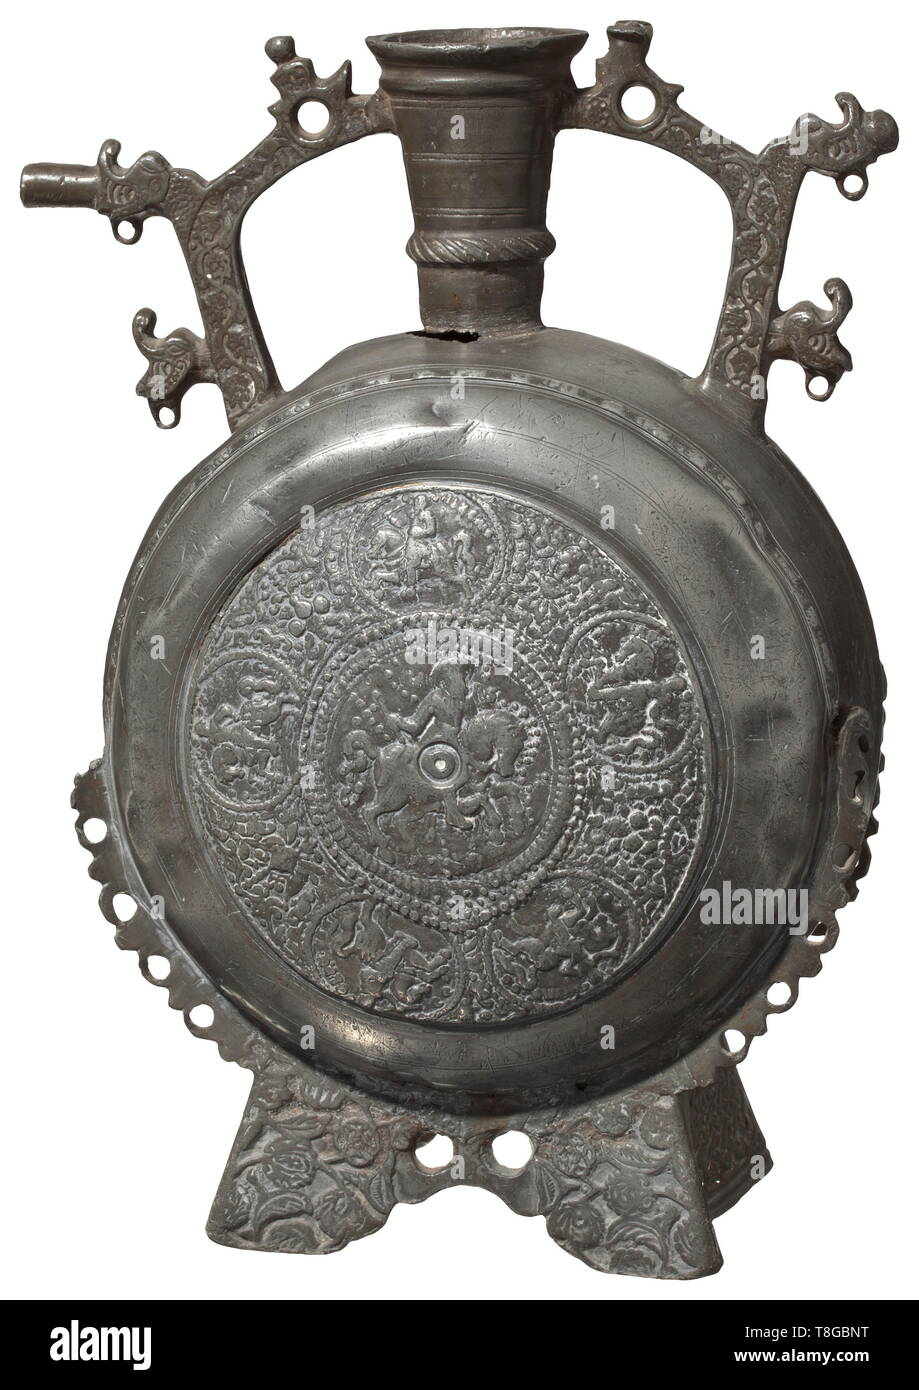 A magnificent Balkan flask, mid-17th century Flat flask of leaded pewter alloy with grey age patina, richly decorated in relief. Round body soldered of three pieces, both sides with a cast of a Nuremberg prince-elector plate. Flared foot with scrolling flowers and lattice pattern at either side. Conical neck with sturdy lip, two side handles with scrolling leaves in relief and stylised dragon heads. Some dents, small cracks and older repairs, minor flaw at the shoulder. Height 36 cm. Rare vessel type, probably used for religious ceremonies. The d, Additional-Rights-Clearance-Info-Not-Available - Stock Image